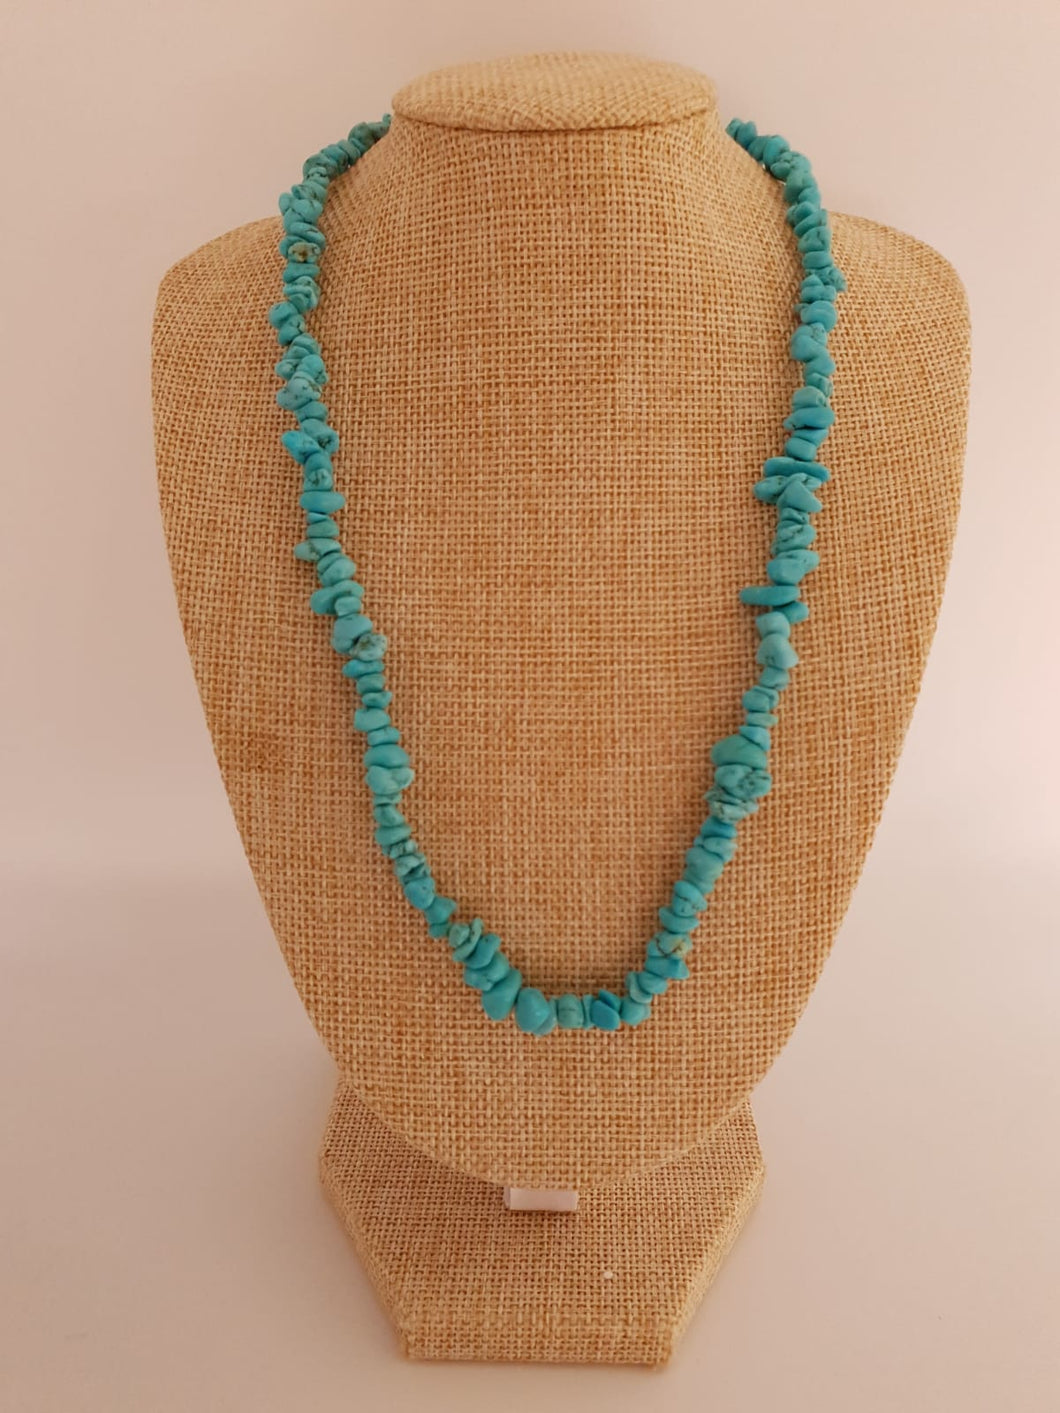 PROPRIANO : Collier turquoise véritable